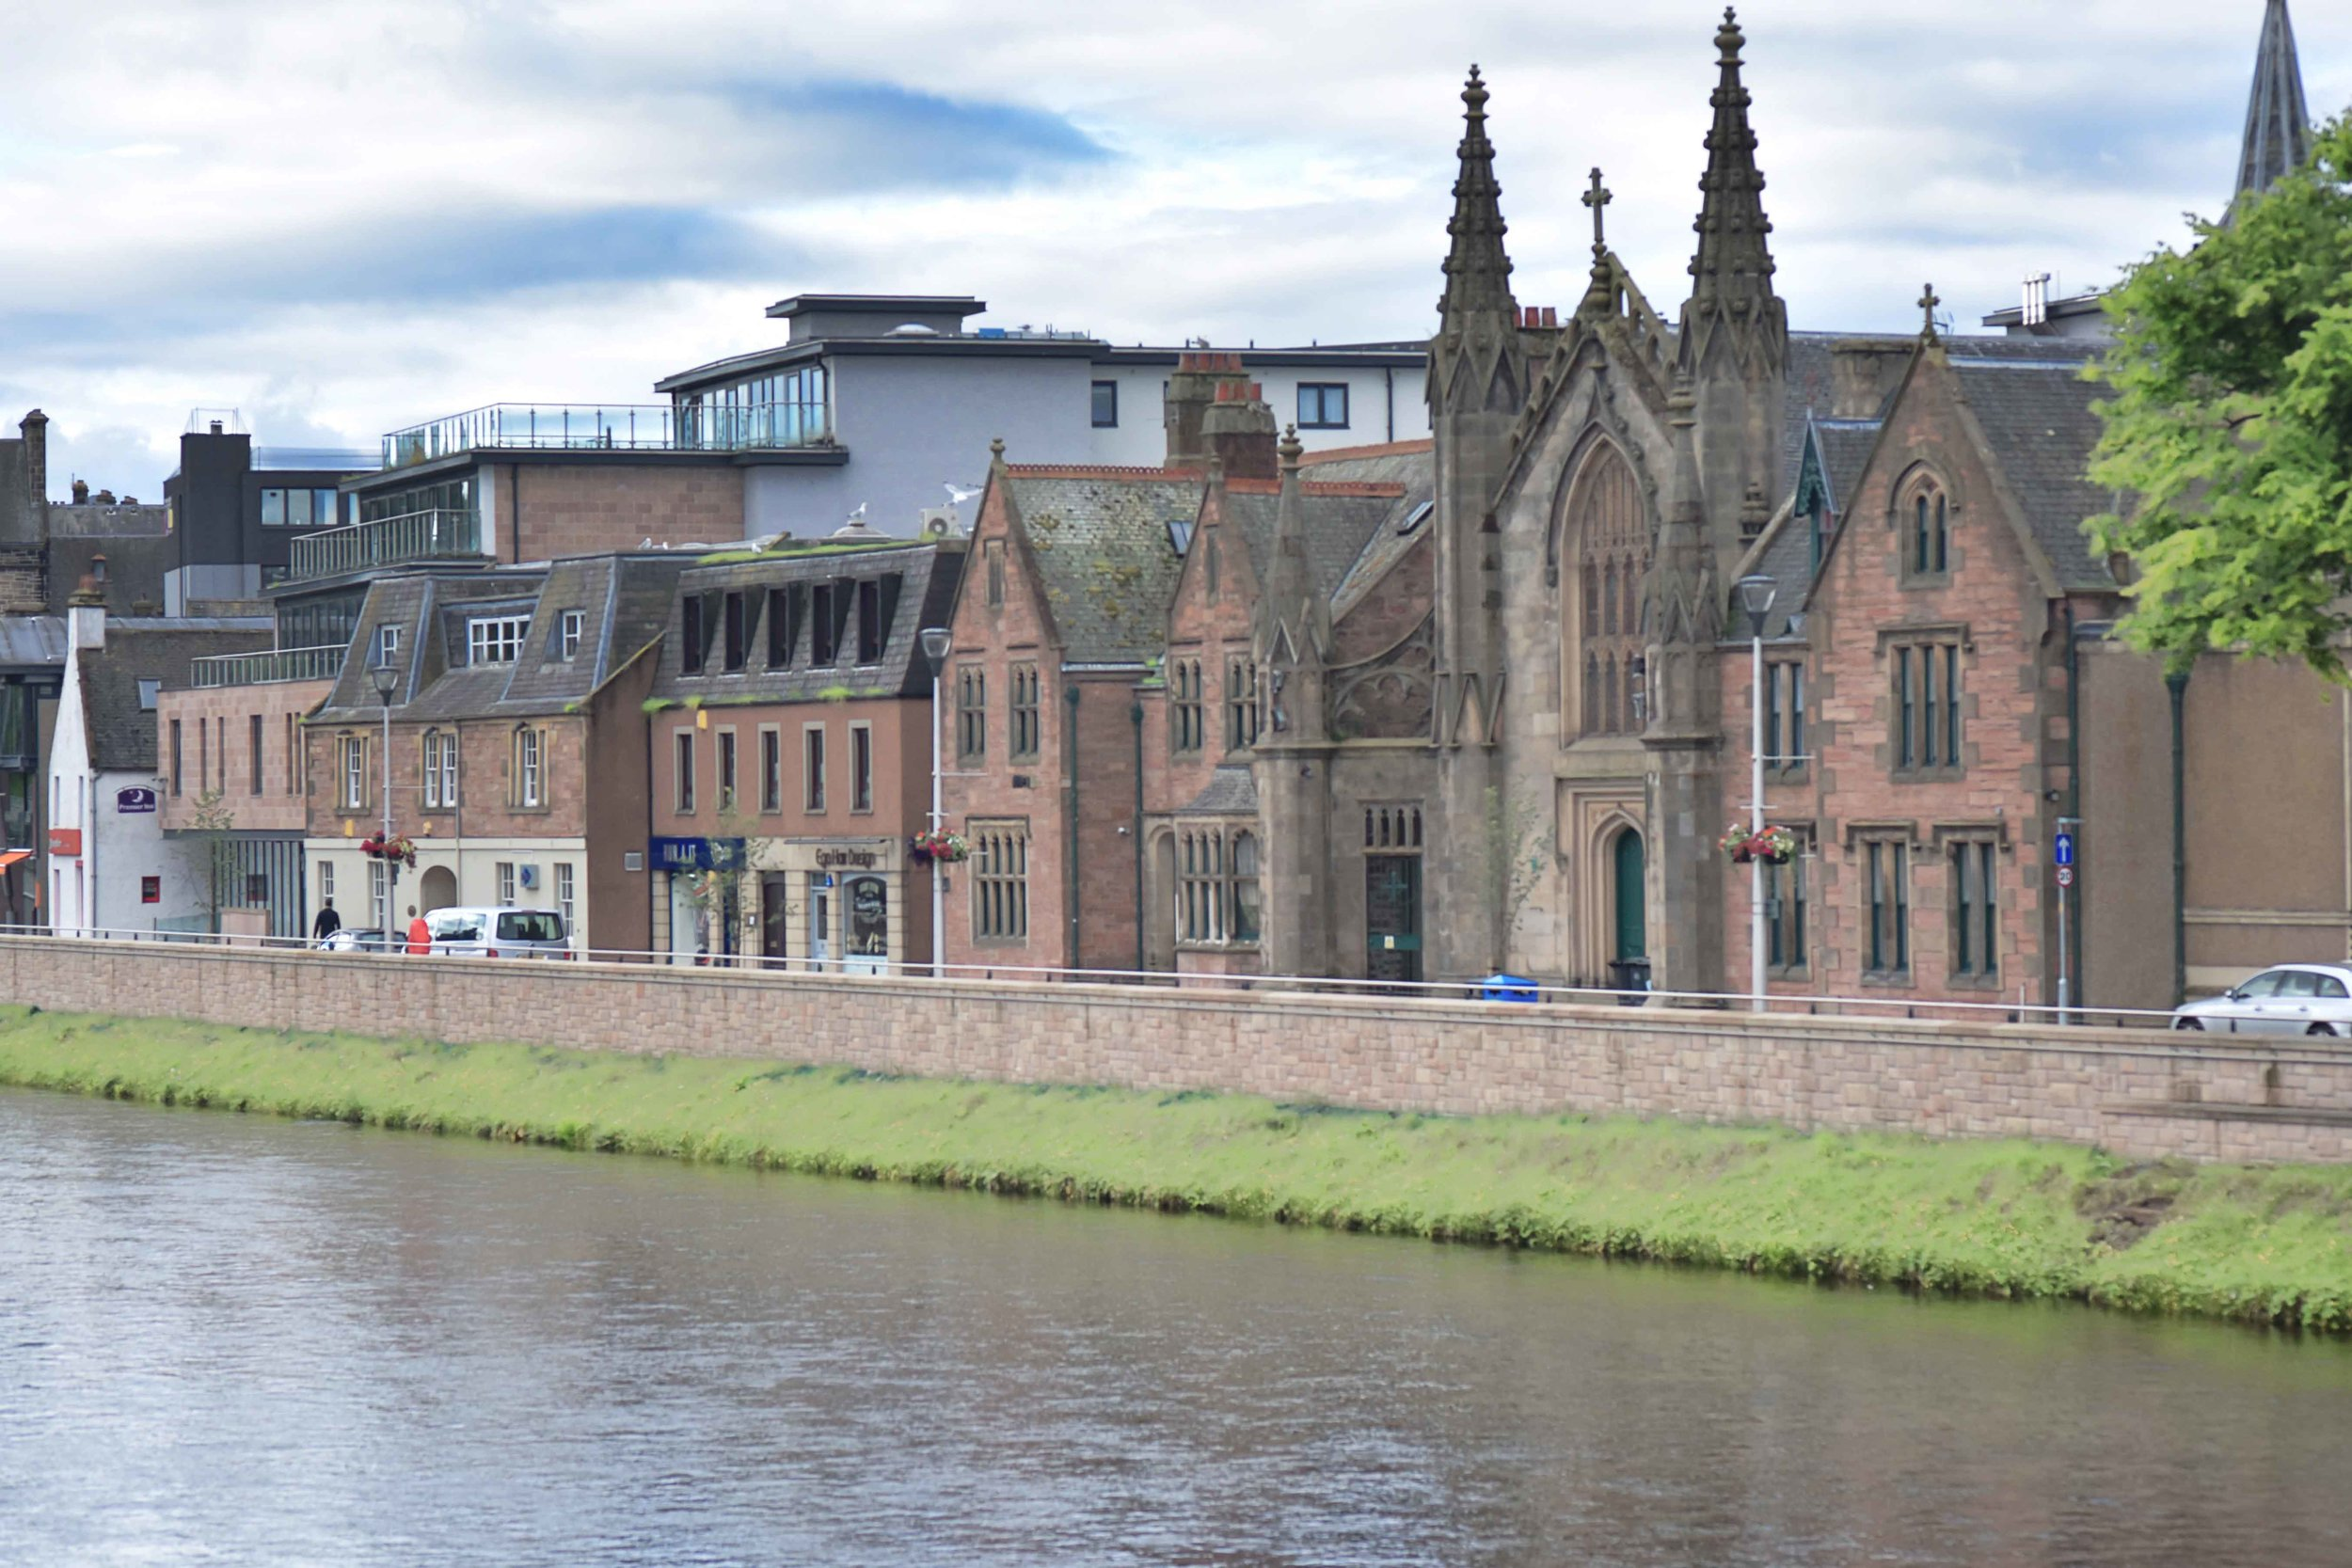 Inverness Old Town, Ness river, Inverness, Scotland. Image©sourcingstyle.com